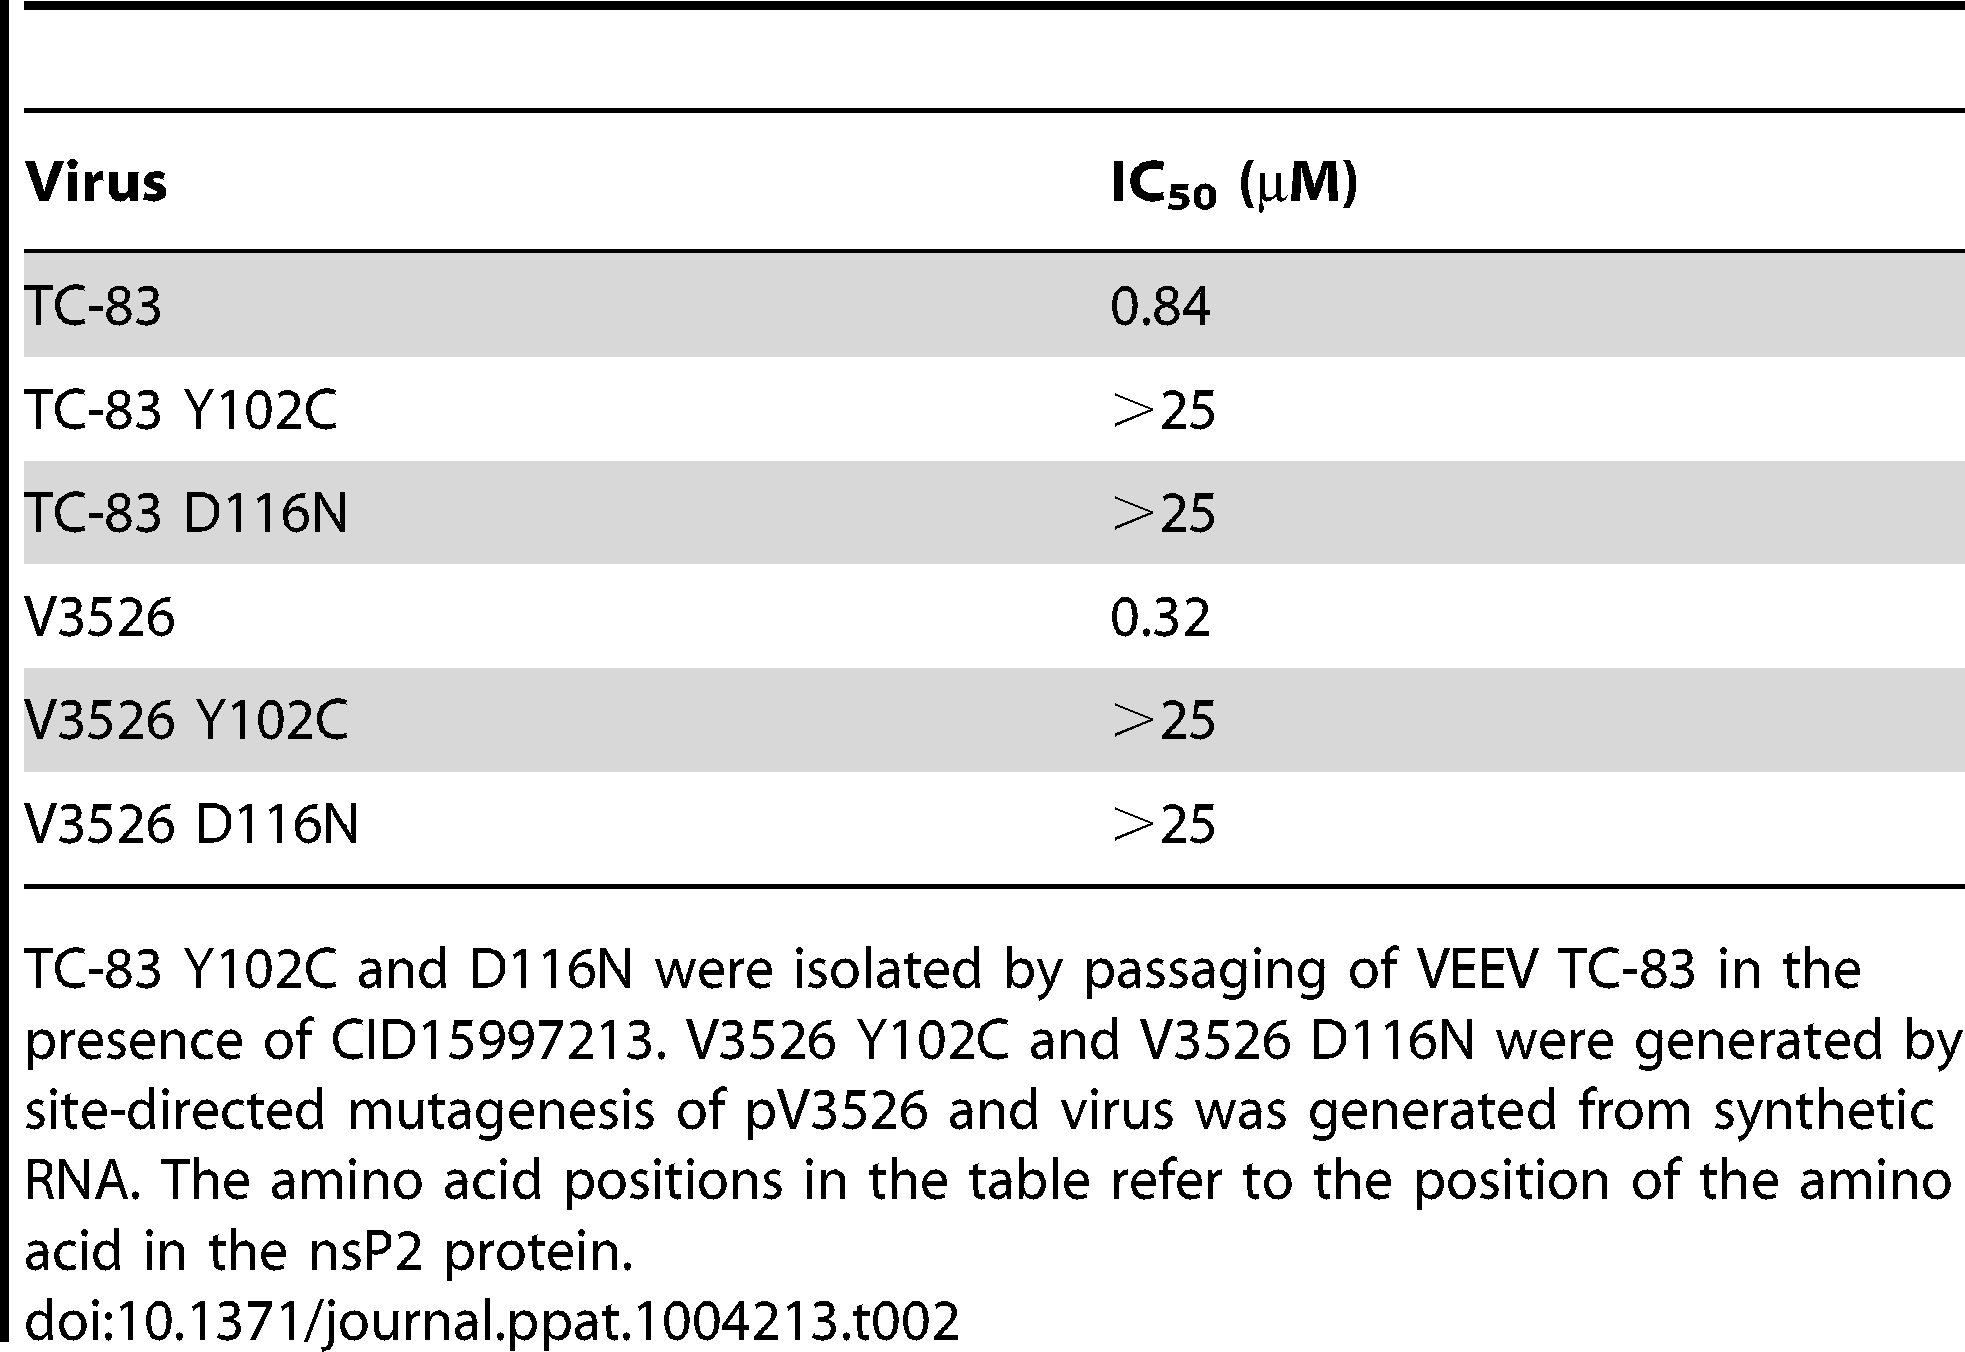 Antiviral activity of CID15997213 with VEEV and VEEV mutants.